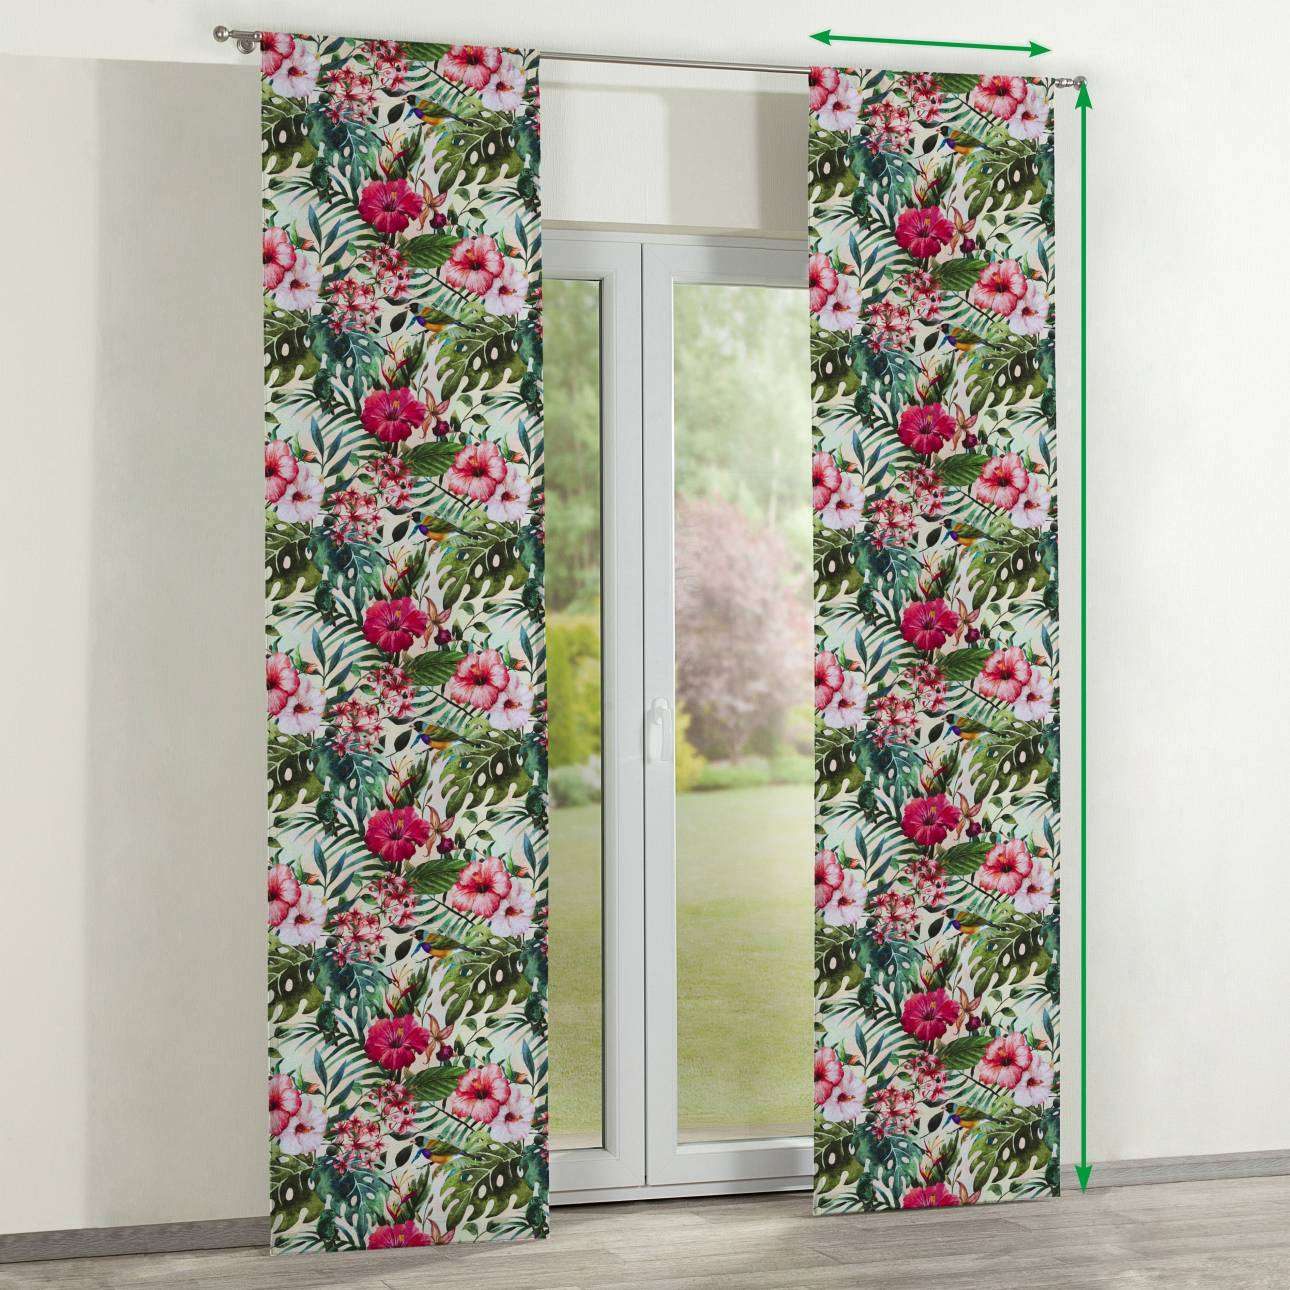 Slot panel curtains – Set of 2 in collection New Art, fabric: 140-21